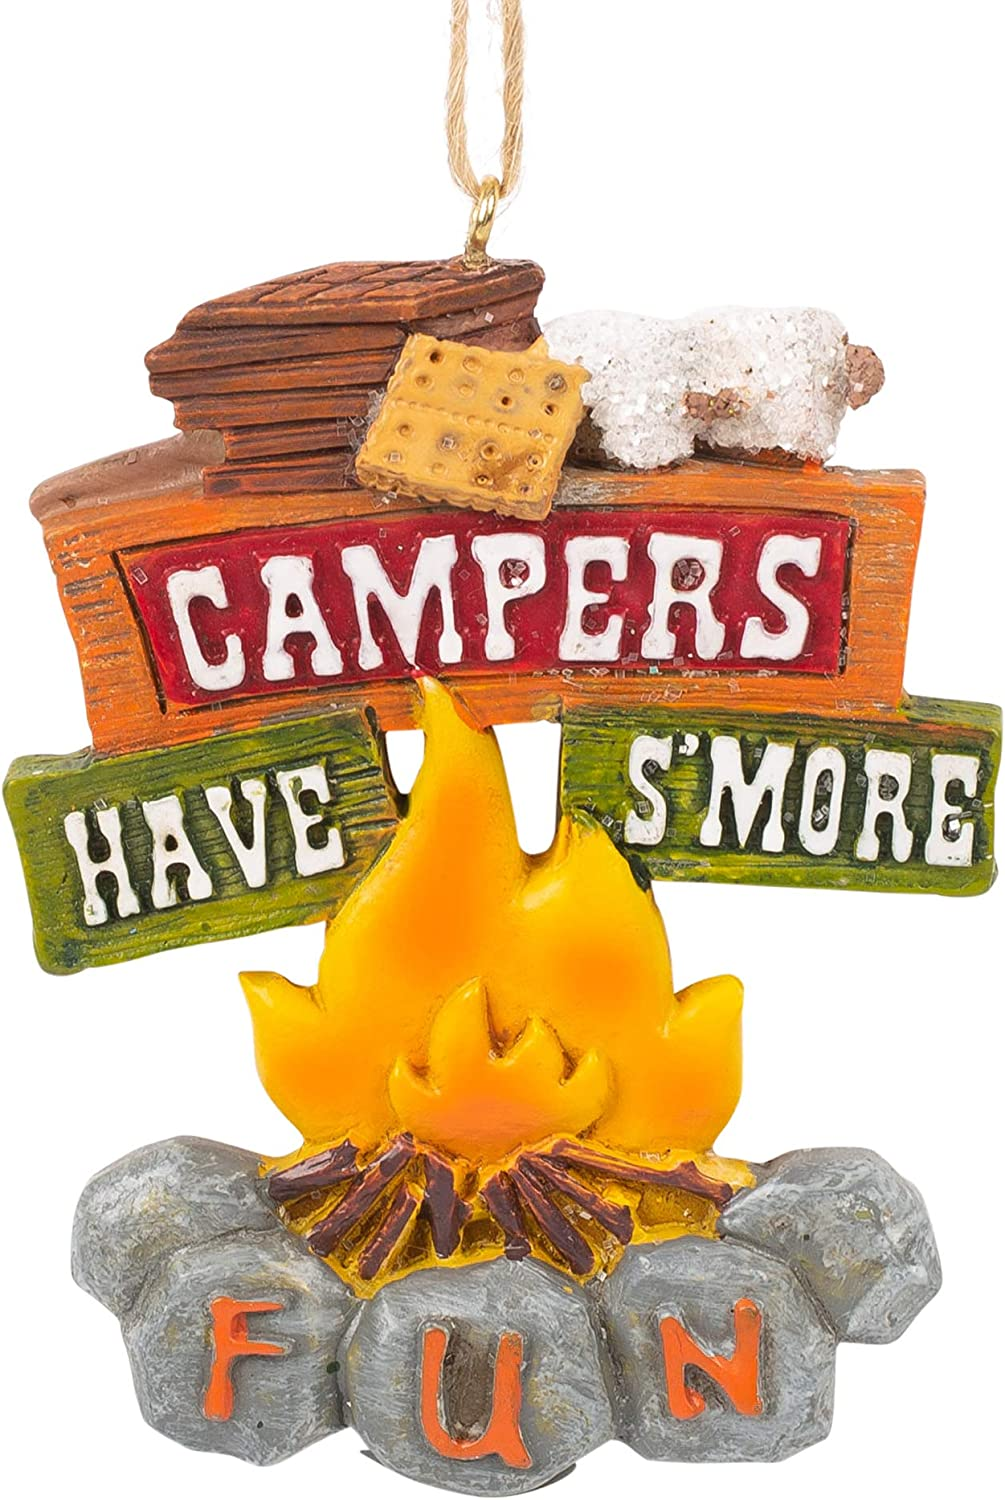 Midwest-CBK Campers Have S'more Fun Ornament